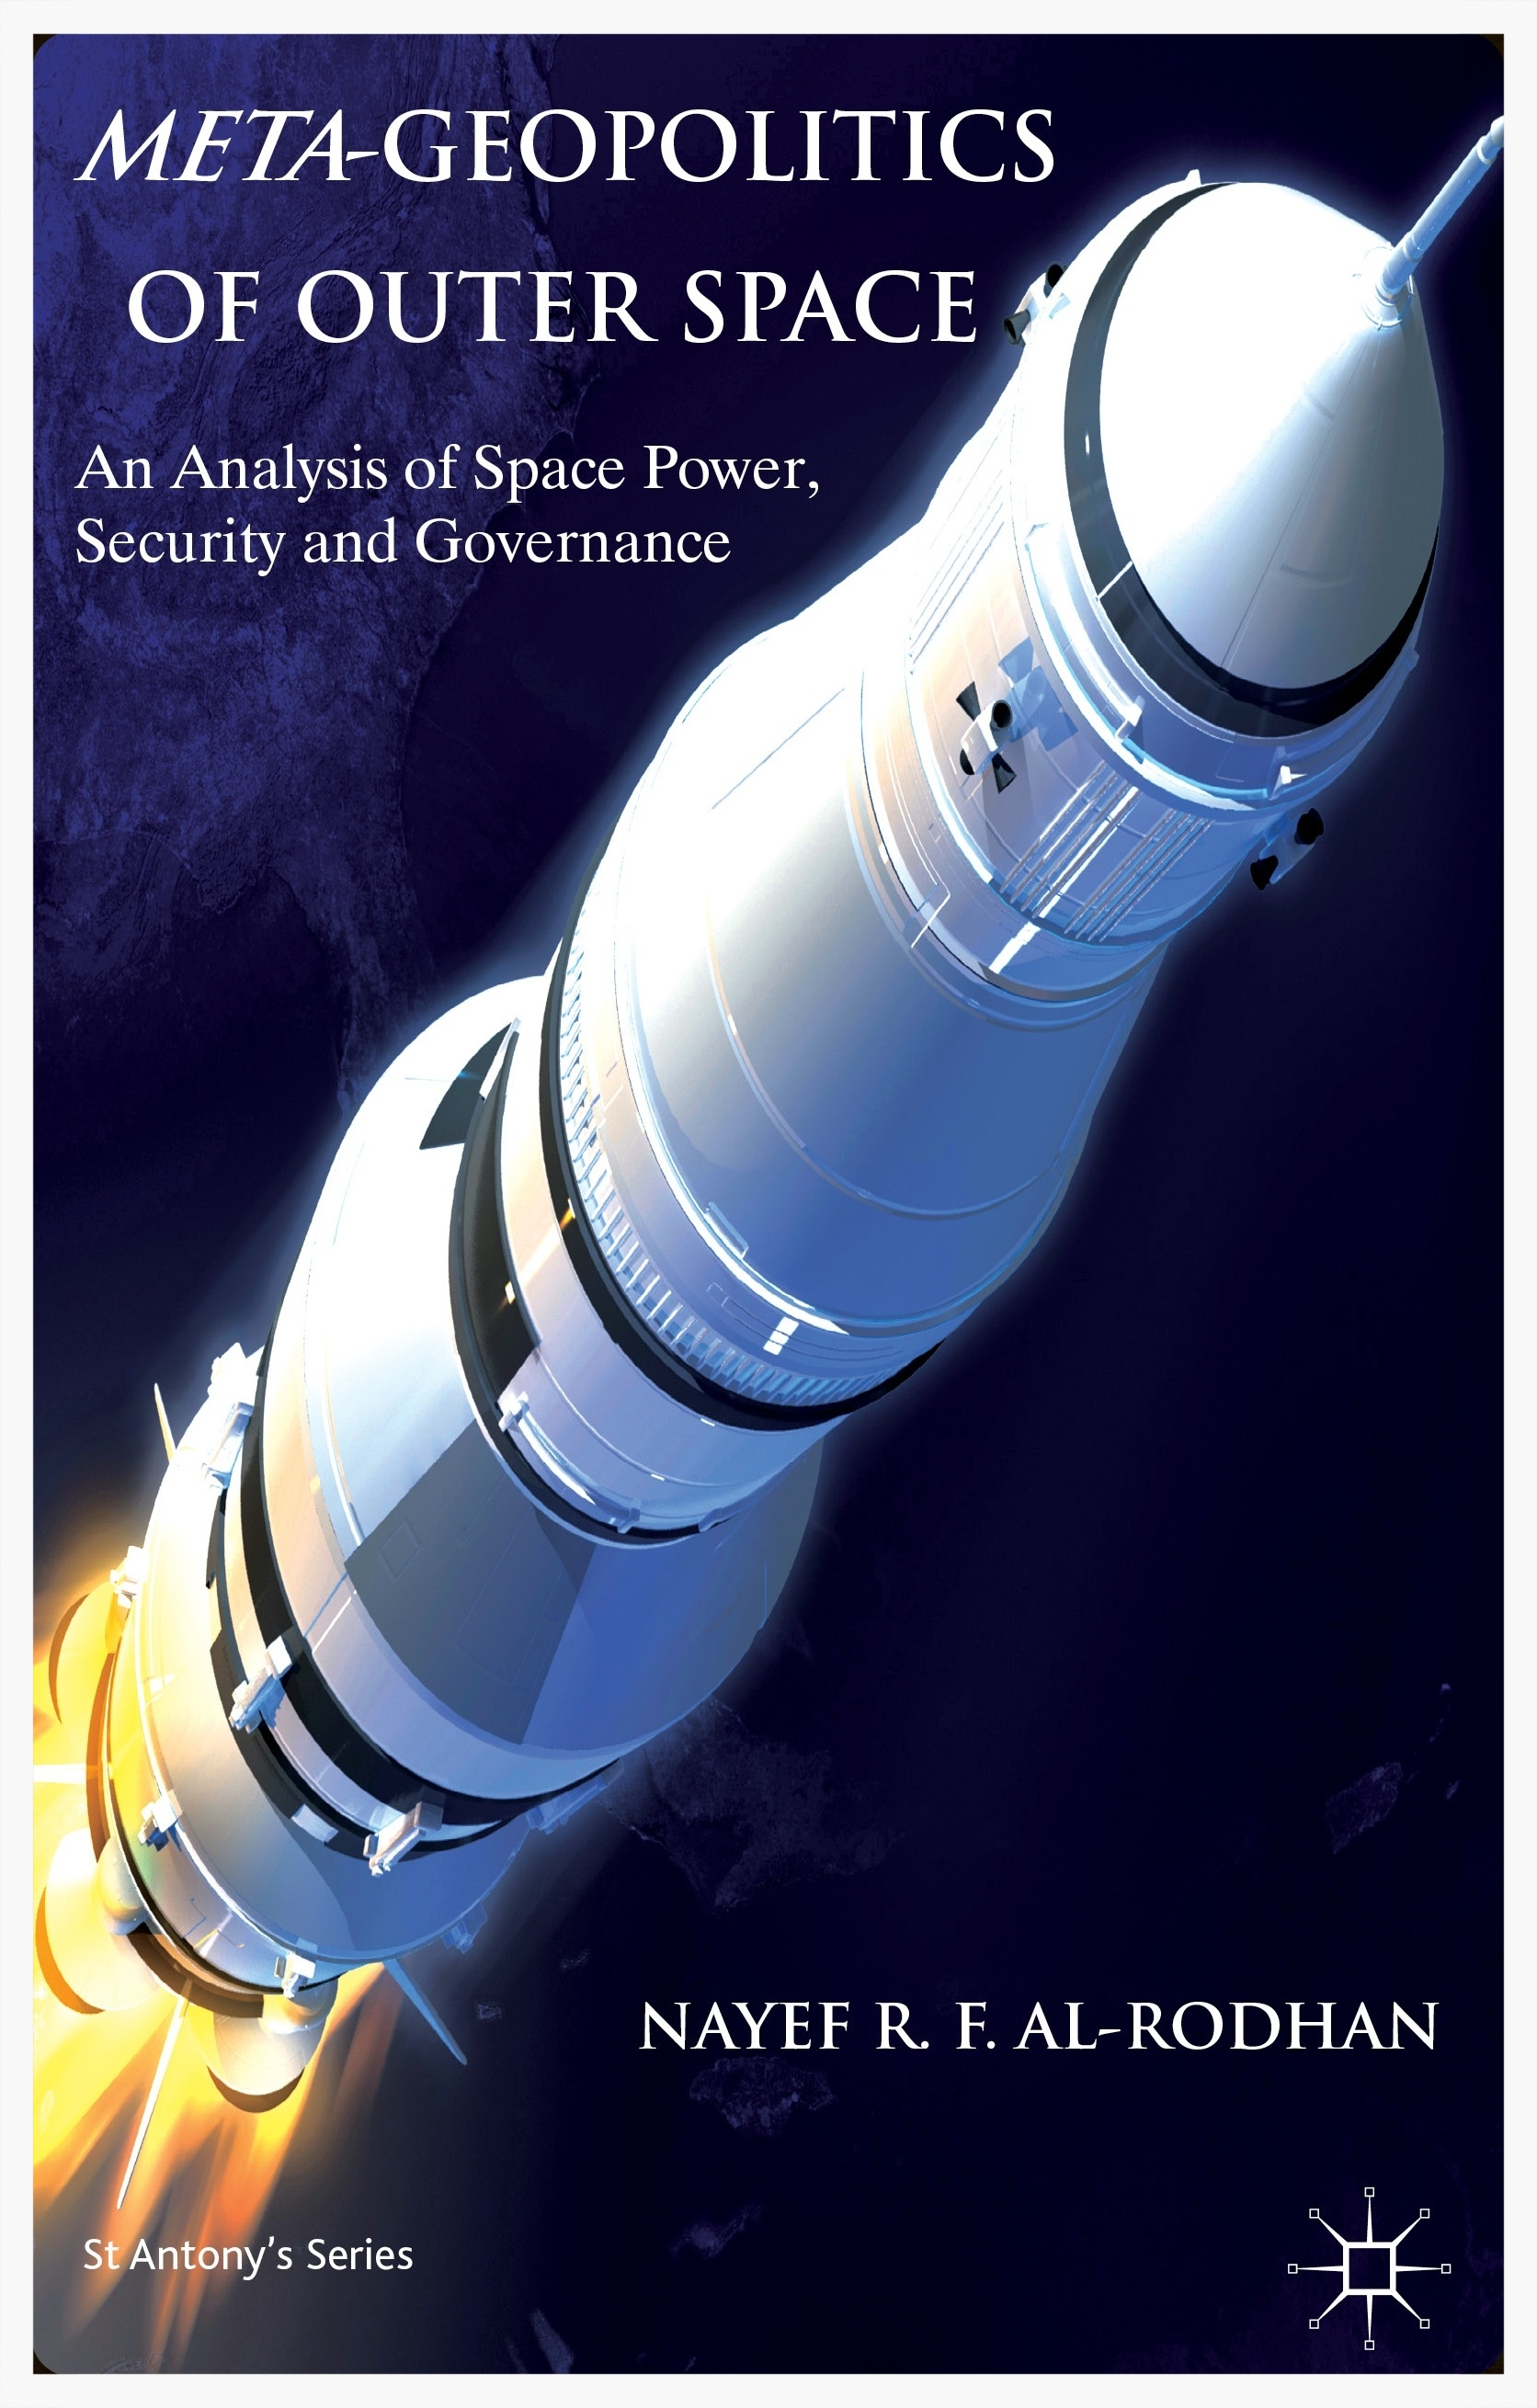 META-GEOPOLITICS OF OUTER SPACE: An Analysis of Space Power, Security and Governance (St Antony's Series)